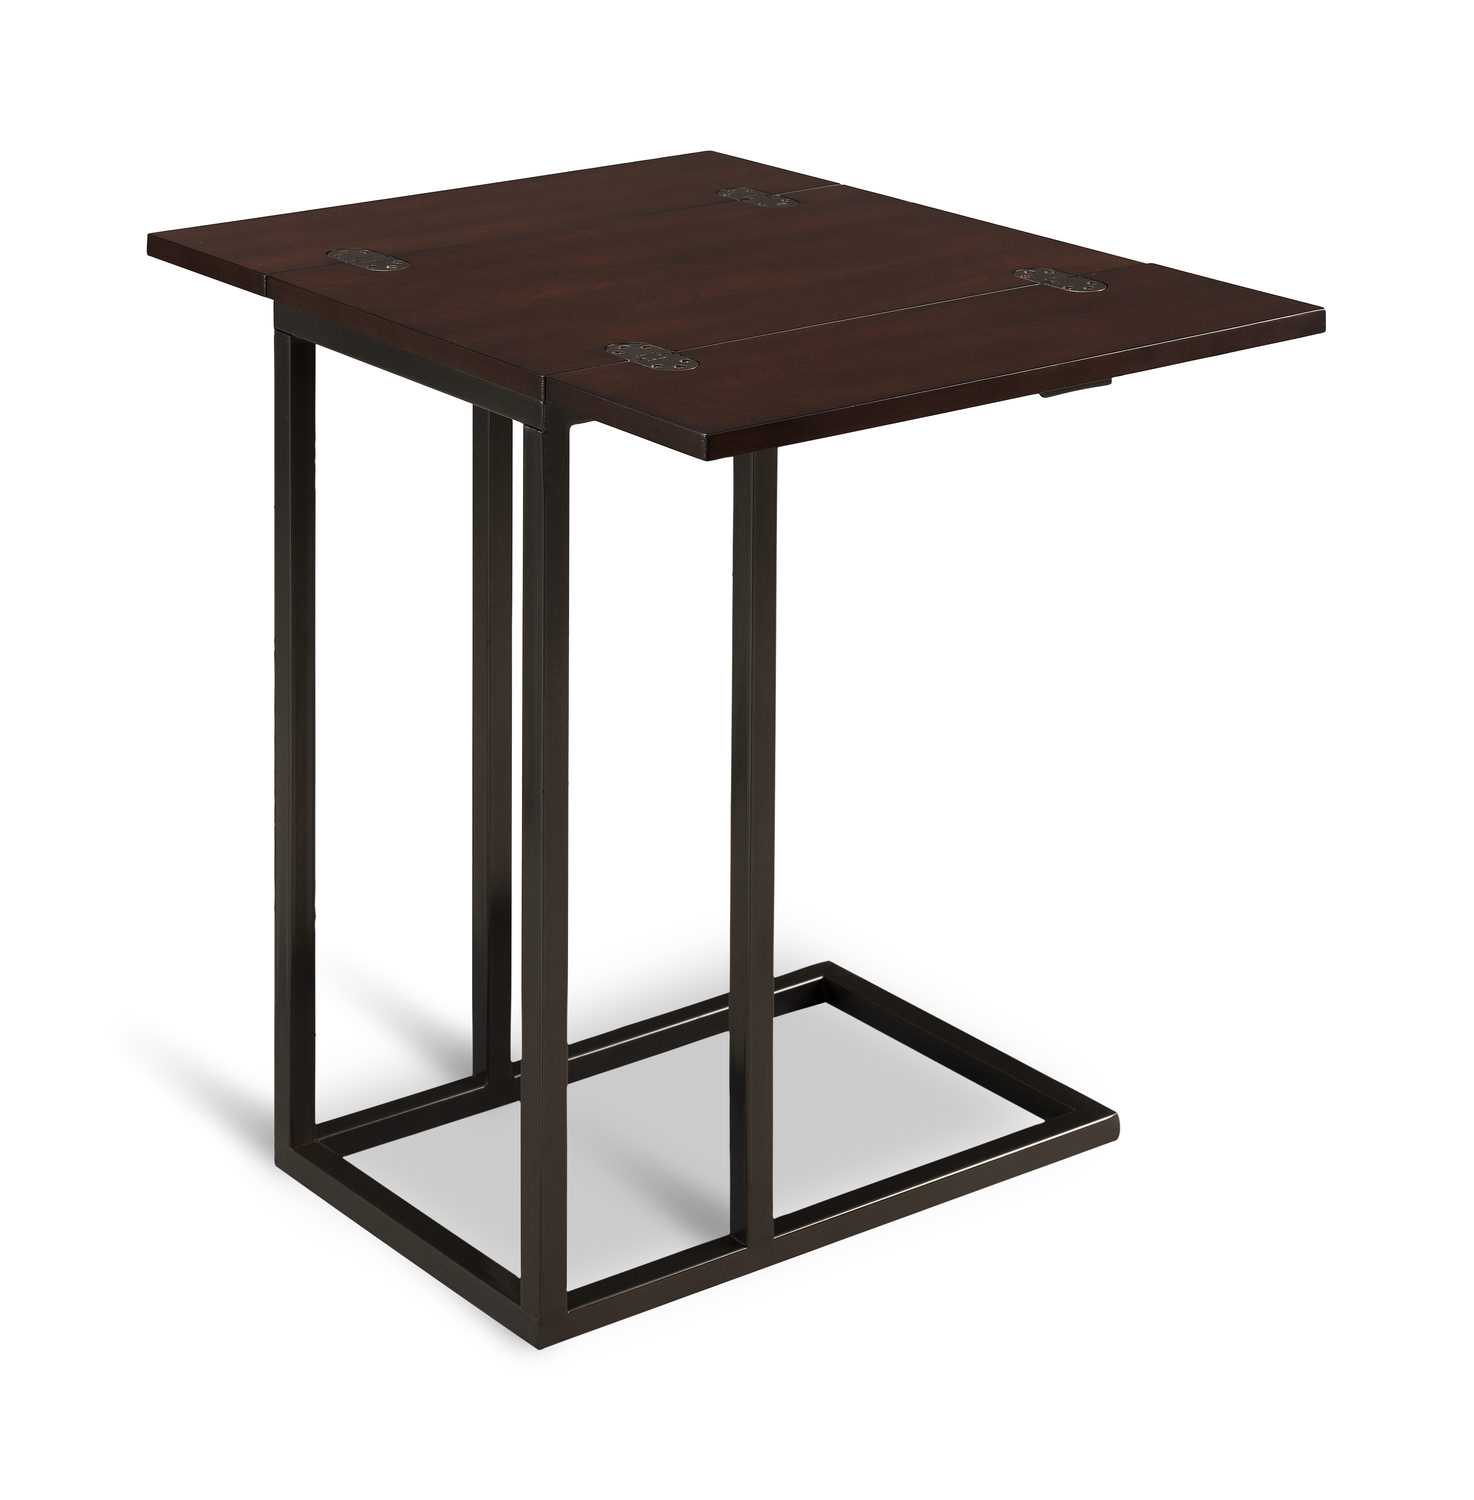 accent tables ott server hom furniture table commercial expanding sofa black steel side drawer file cabinet outdoor dining chairs hot pink wine rack with glass holder room chair